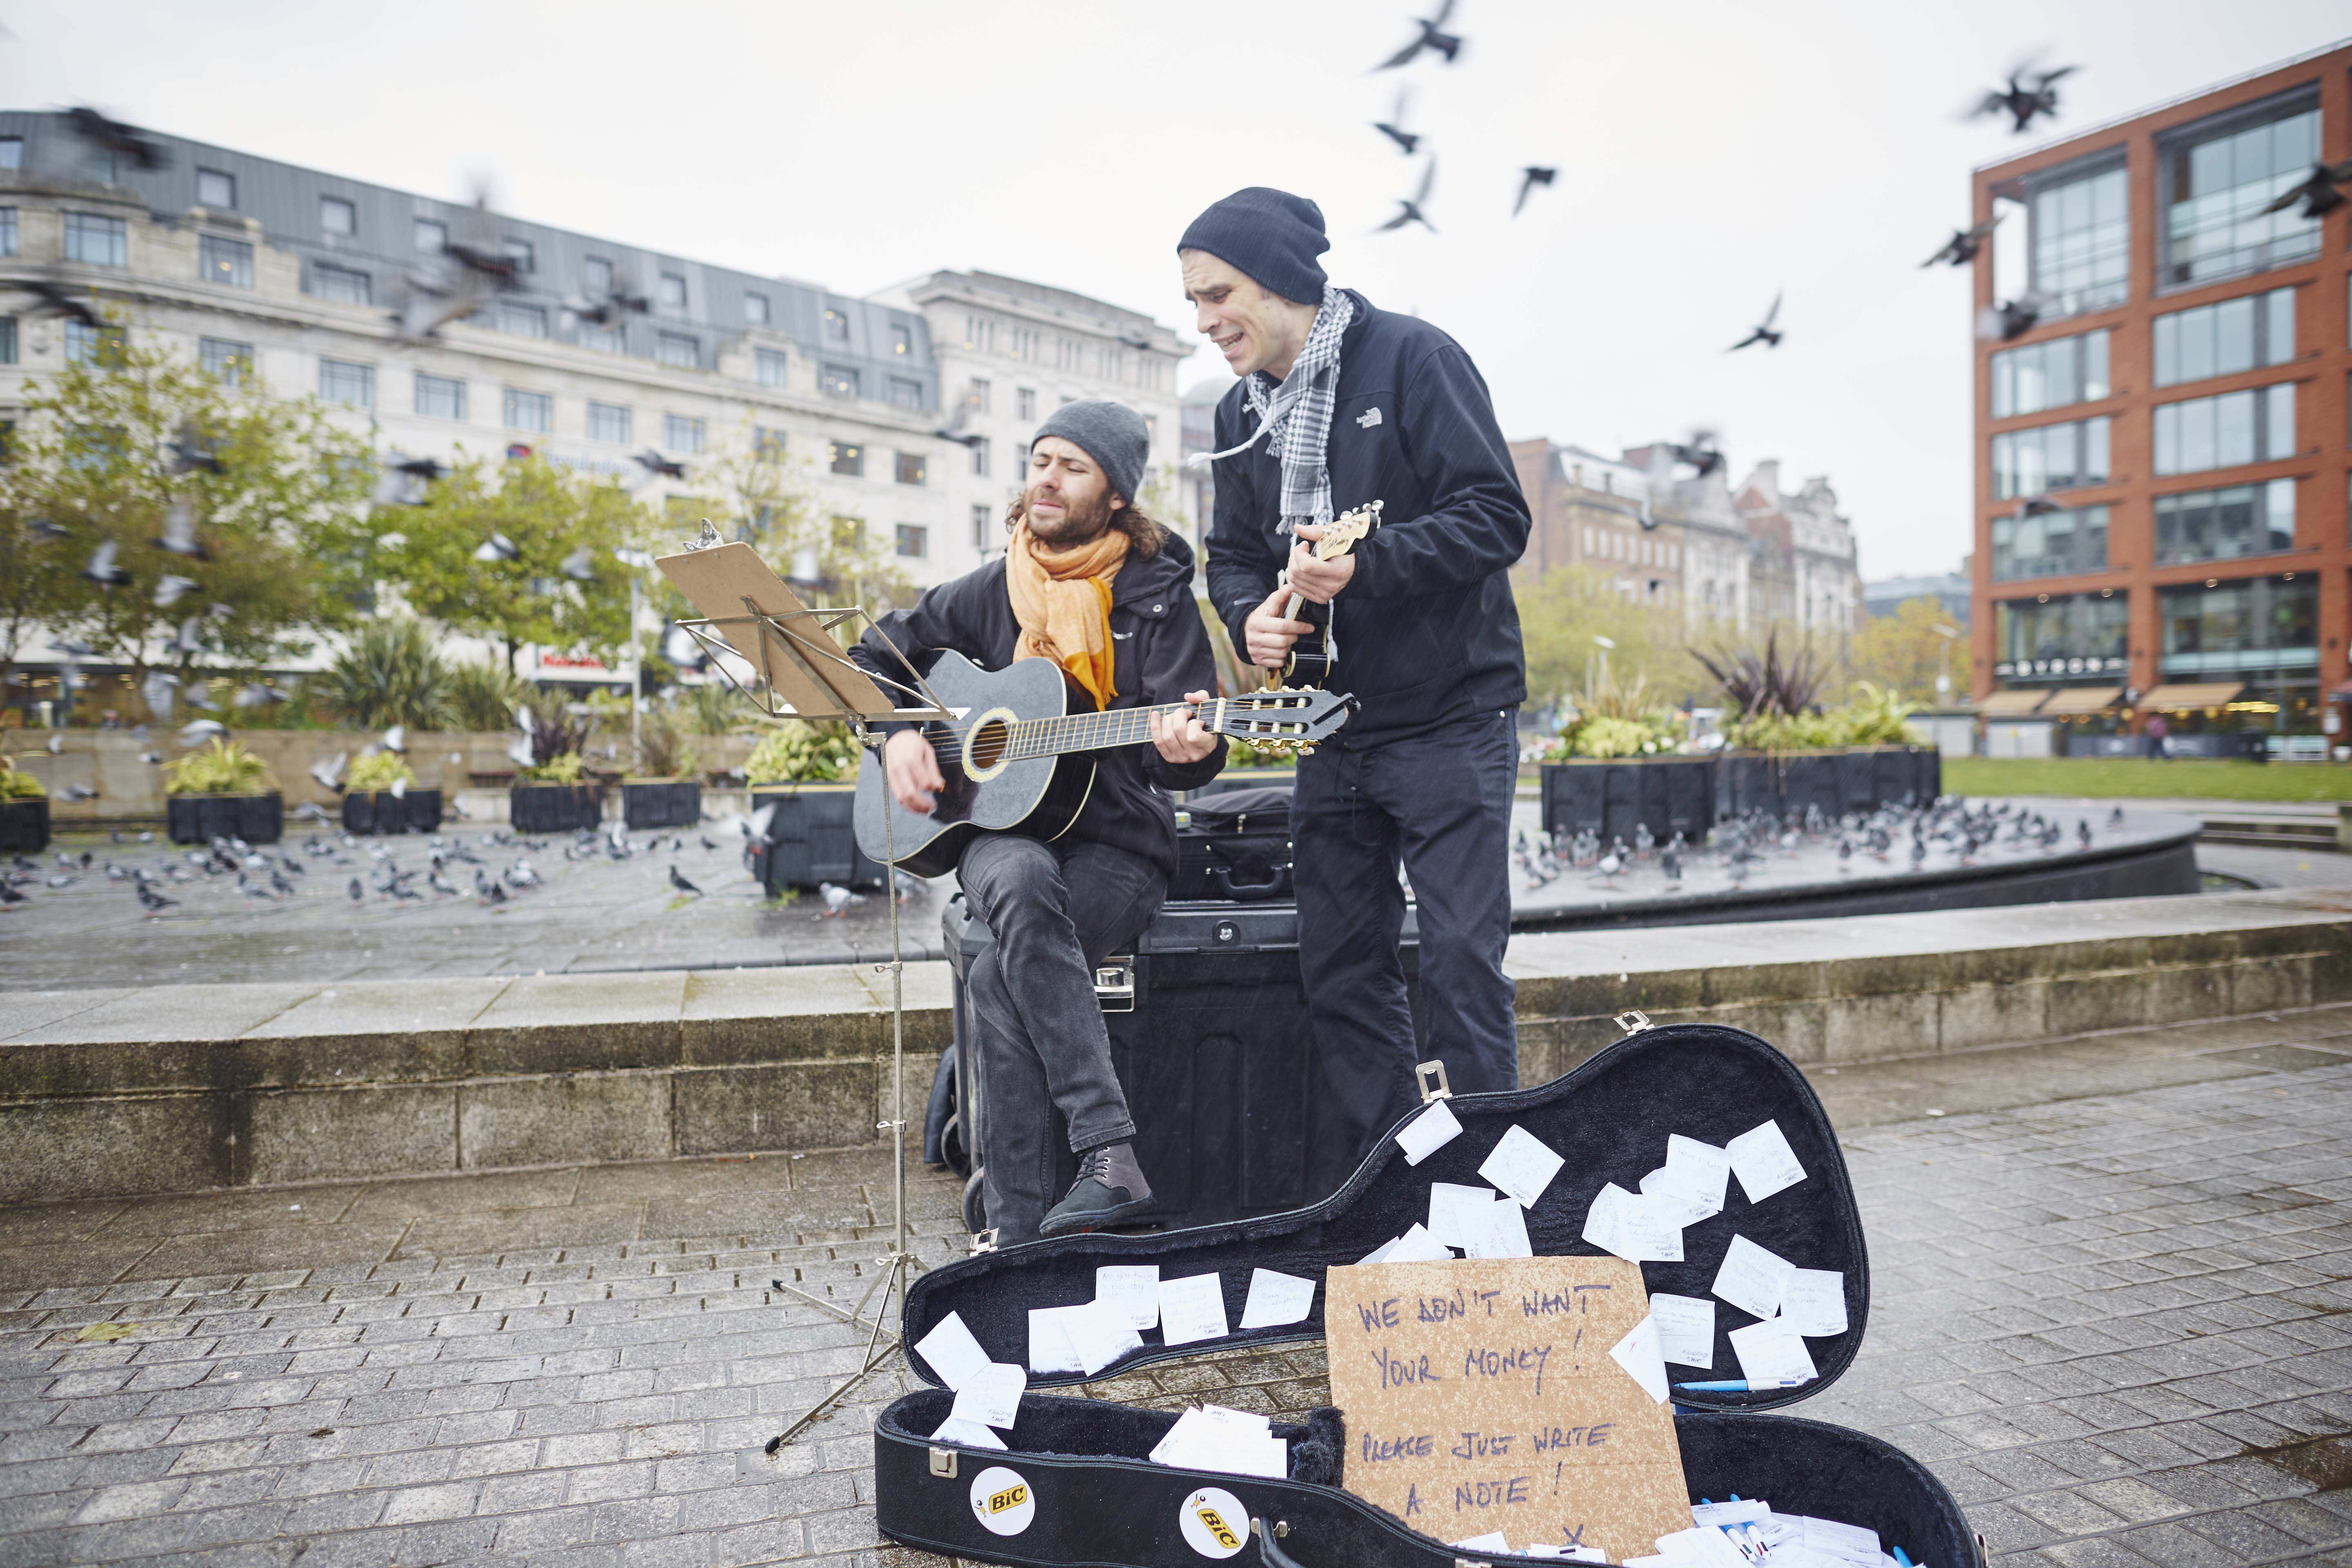 Two men dressed as buskers holding guitars play infront of an opened guitar case as pigeons scatter in the backgrpound